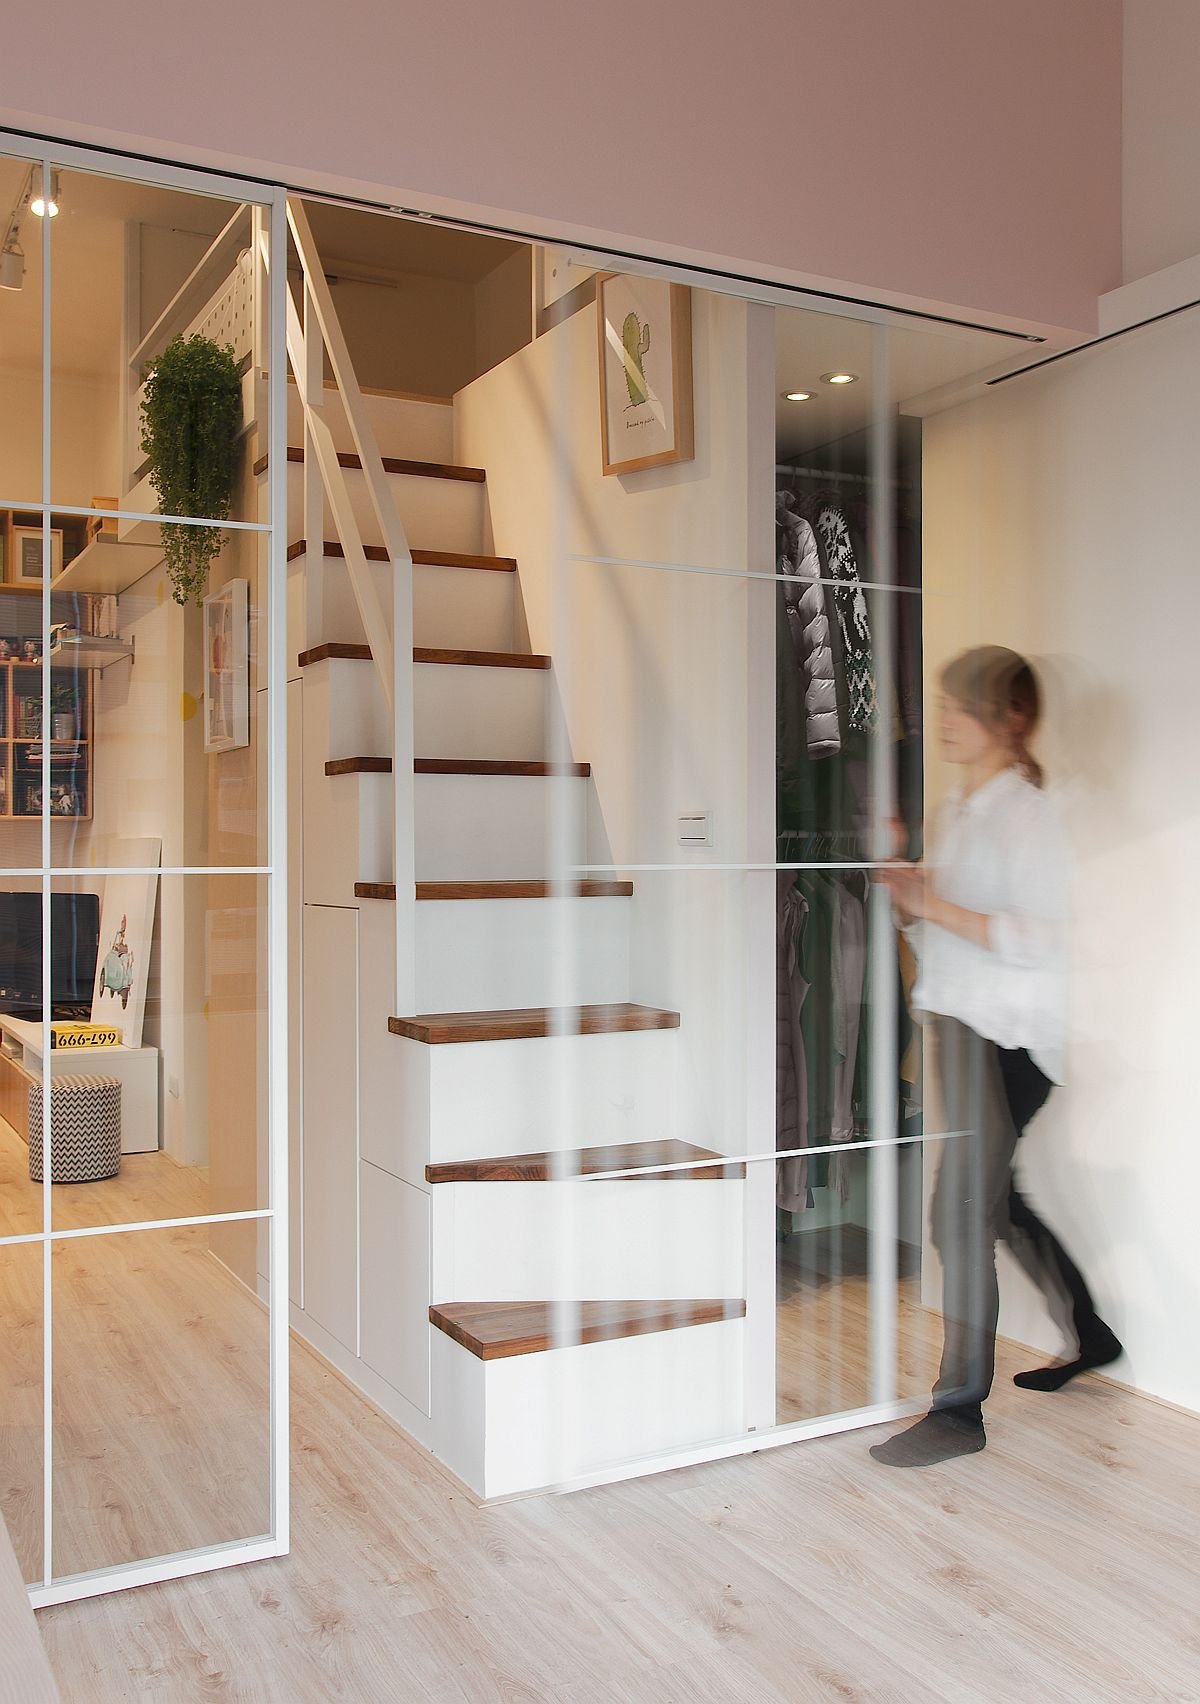 Sliding-glass-doors-used-to-delineate-space-without-stopping-passage-of-light